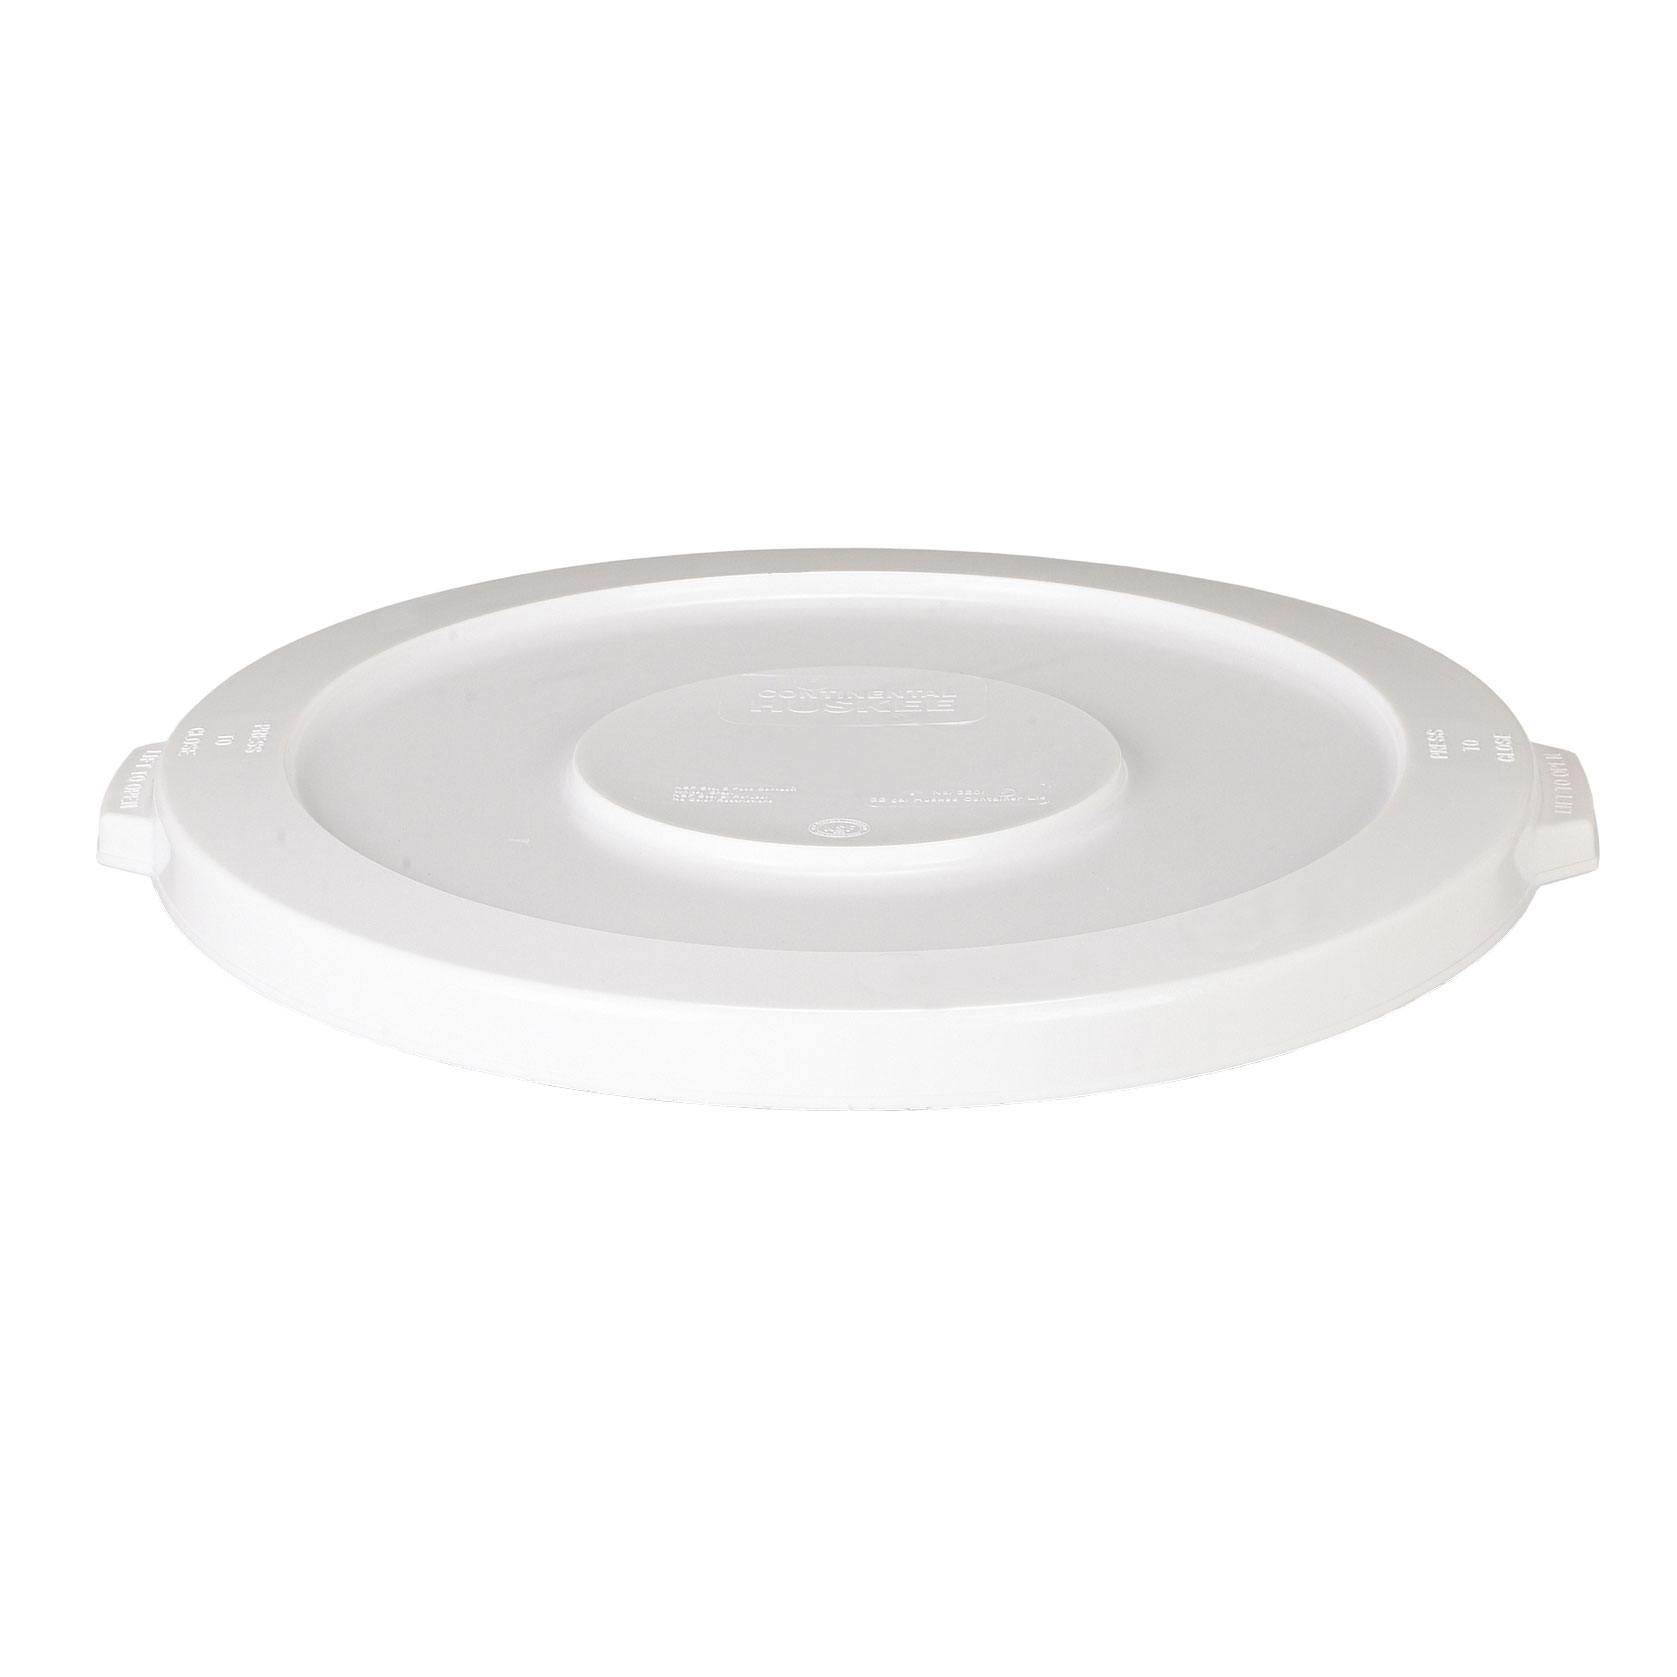 Royal Industries CCP 3201WH trash receptacle lid / top